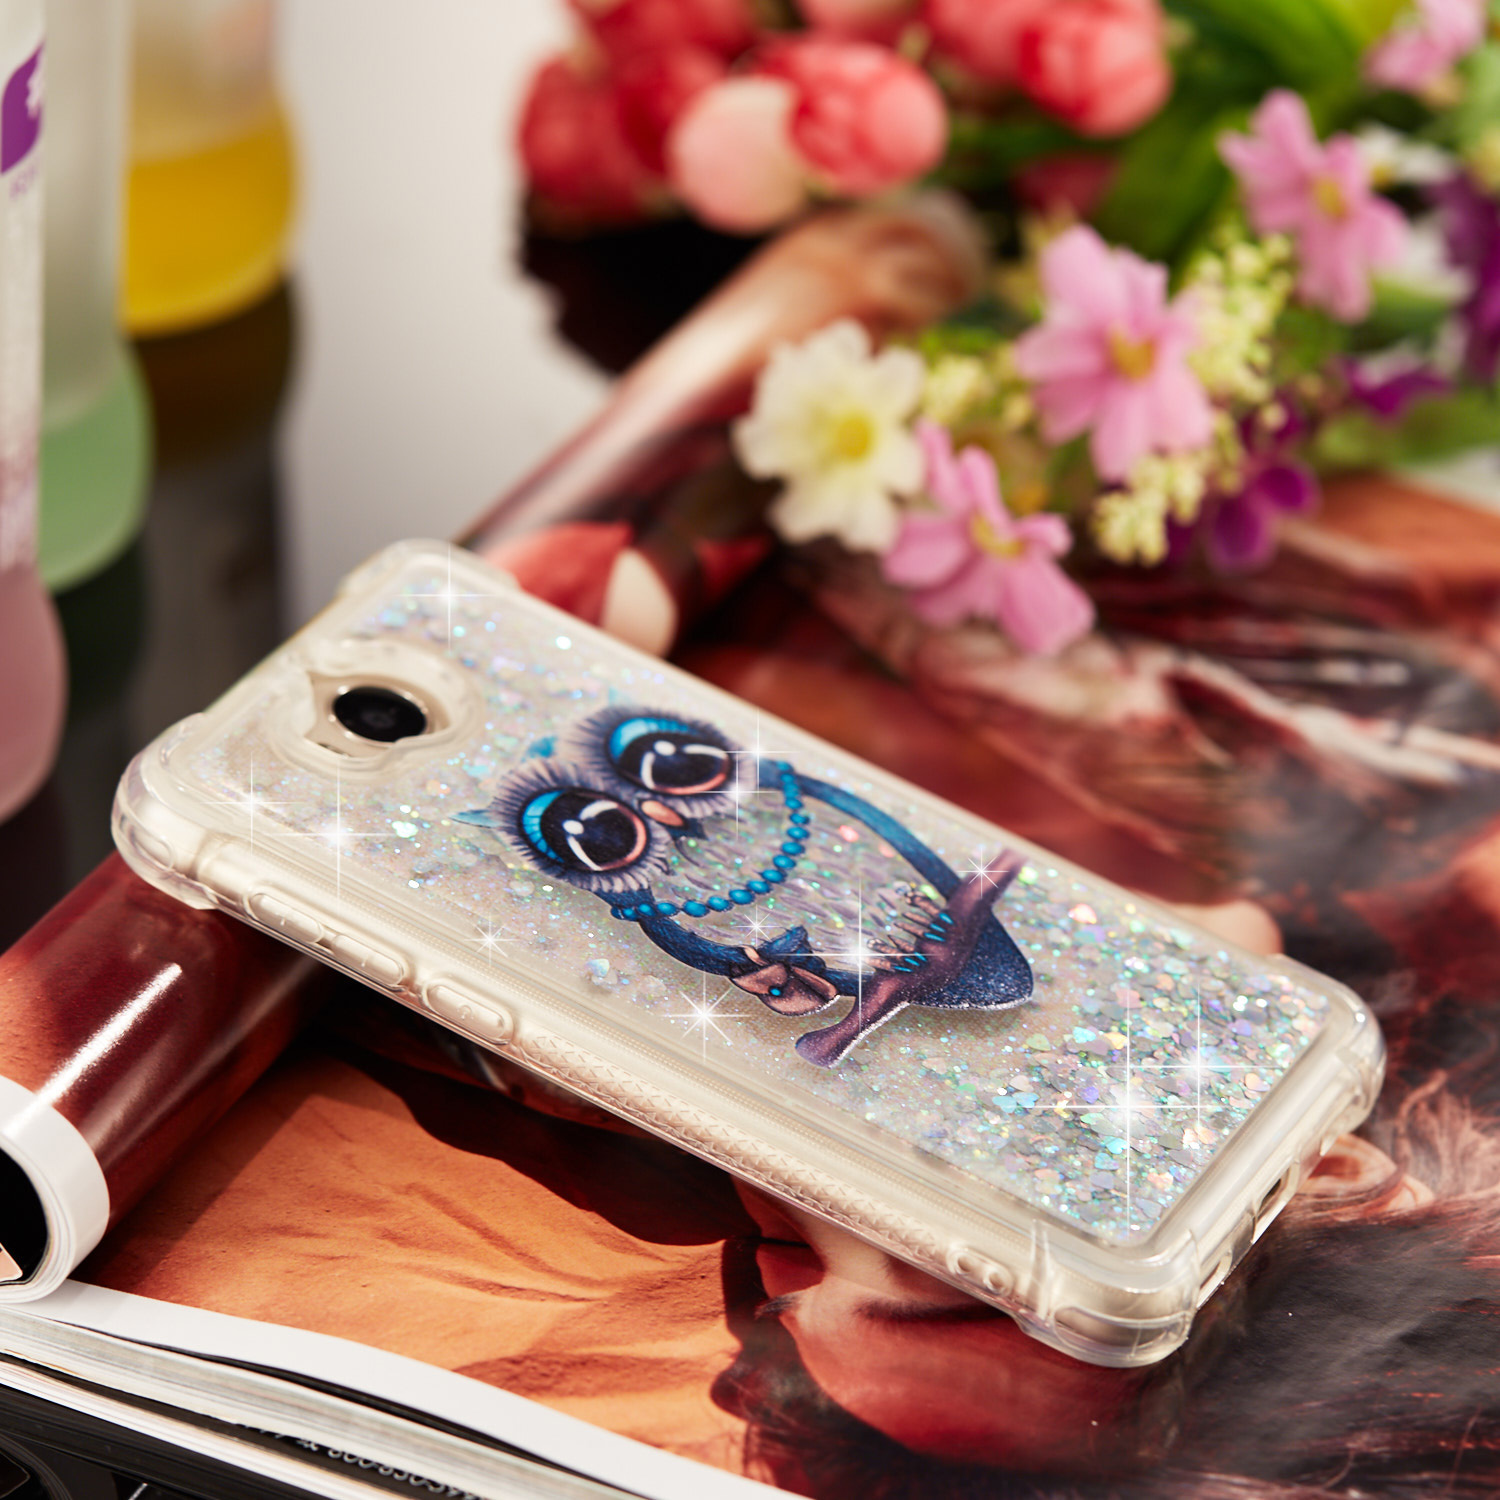 Faithful For Huawei Honor 6c Phone Case Cover Dynamic Liquid Bling Glitter Star Crystal Quicksand Soft Tpu Capa For Huawei Honor 6c Coque Phone Bags & Cases Fitted Cases